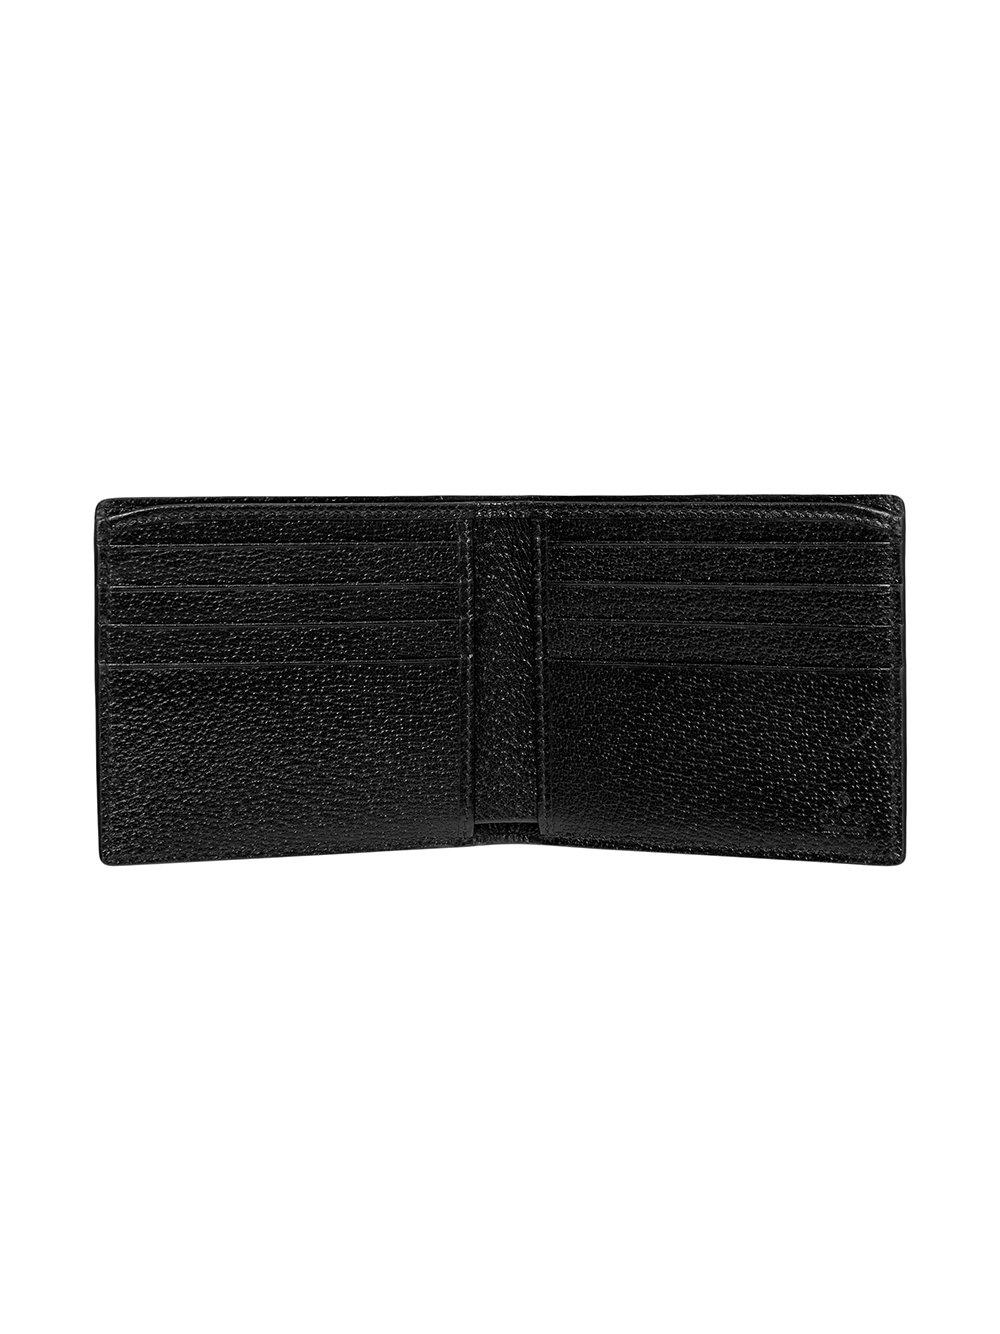 5529d7a6ac40 Gucci - Black Animalier Leather Wallet for Men - Lyst. View fullscreen